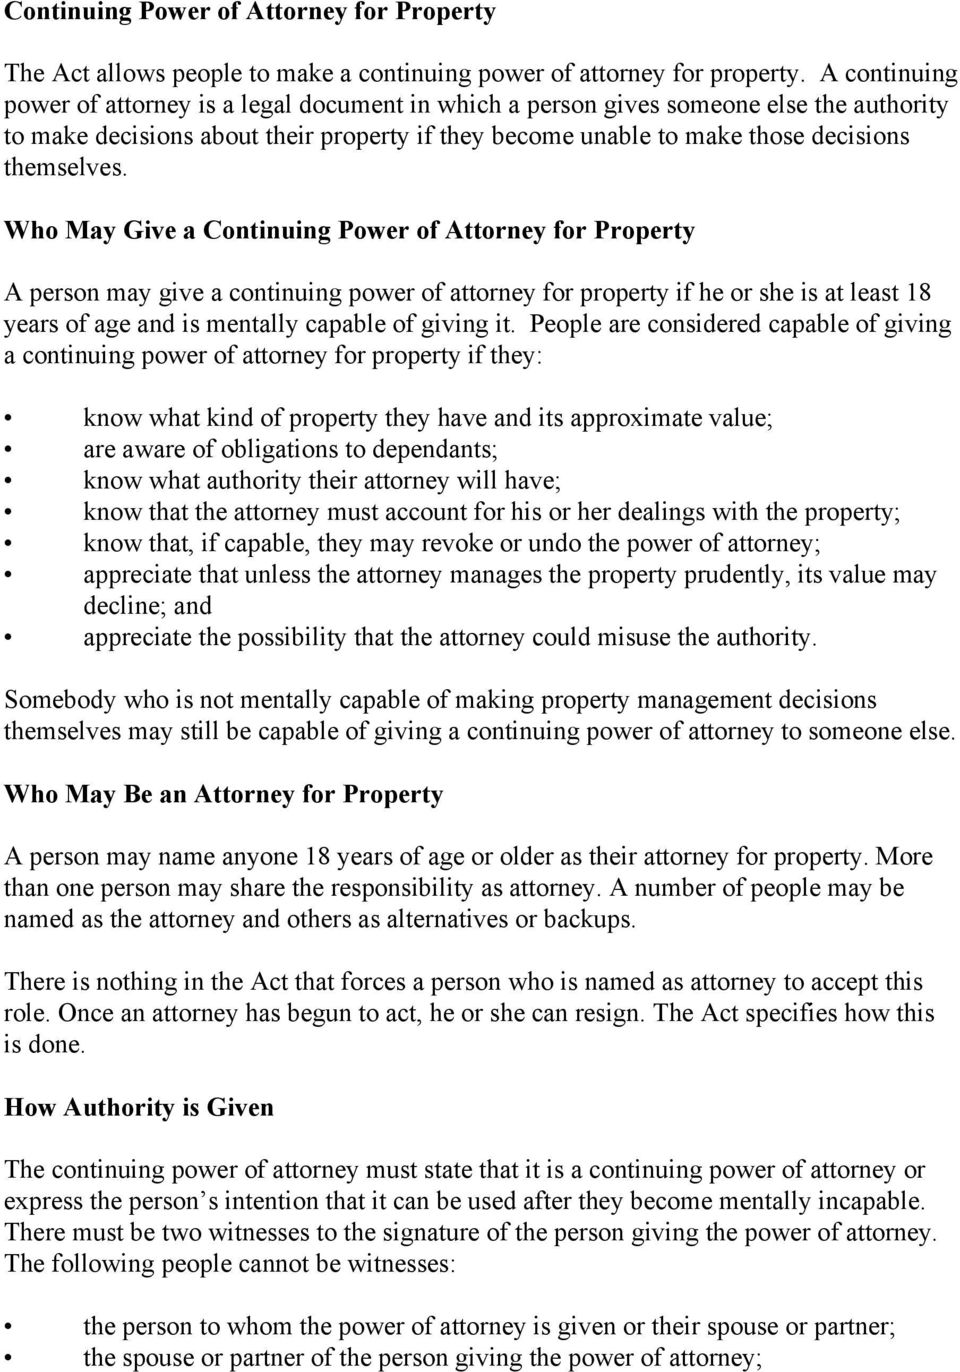 Who May Give a Continuing Power of Attorney for Property A person may give a continuing power of attorney for property if he or she is at least 18 years of age and is mentally capable of giving it.